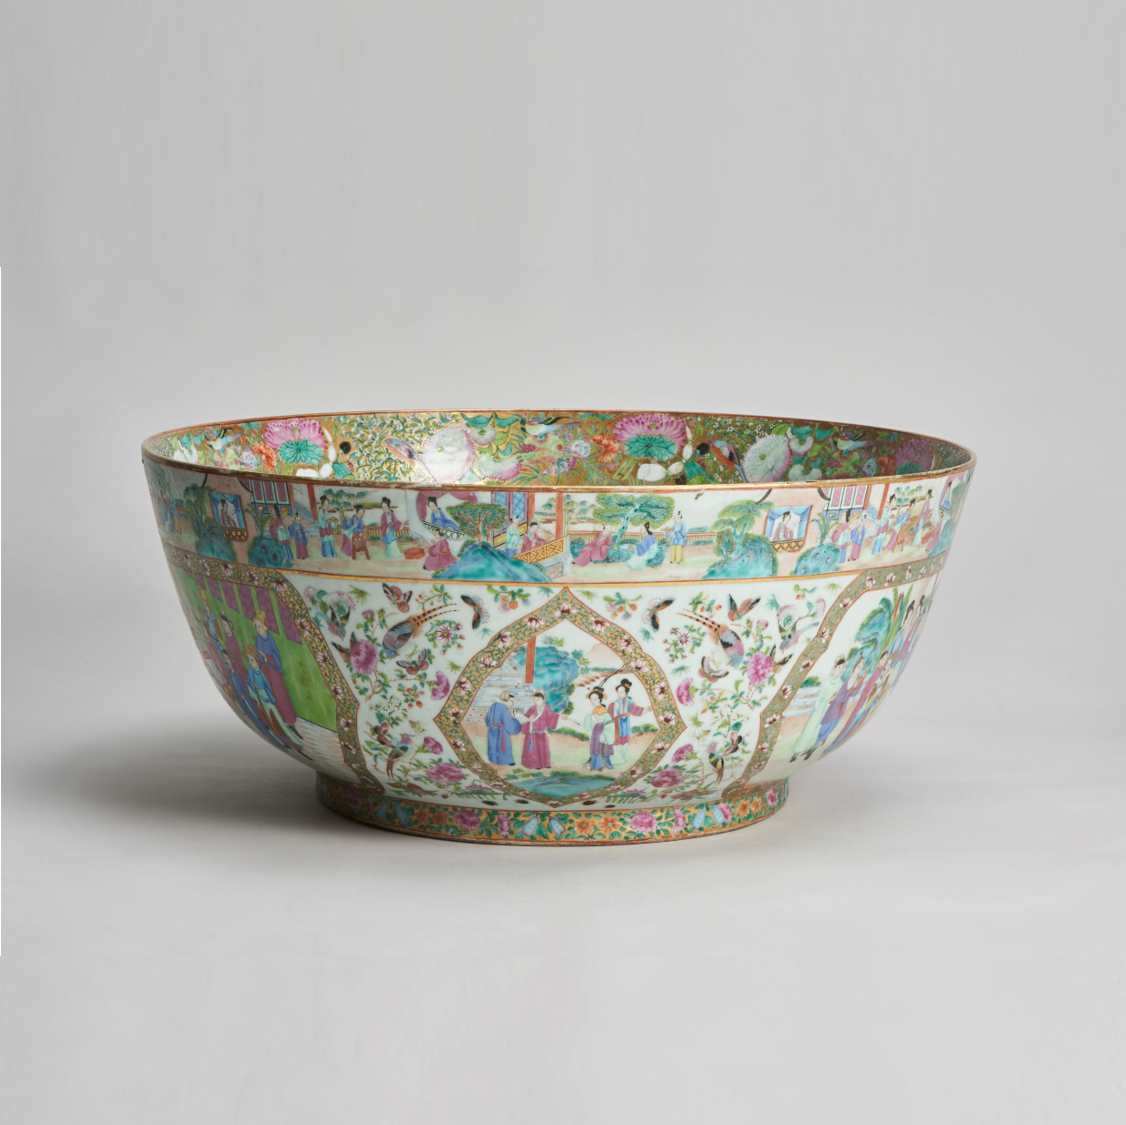 Canton punch bowl   A fantastic, large (59cm across) early 19th Century, decorative Canton punch bowl